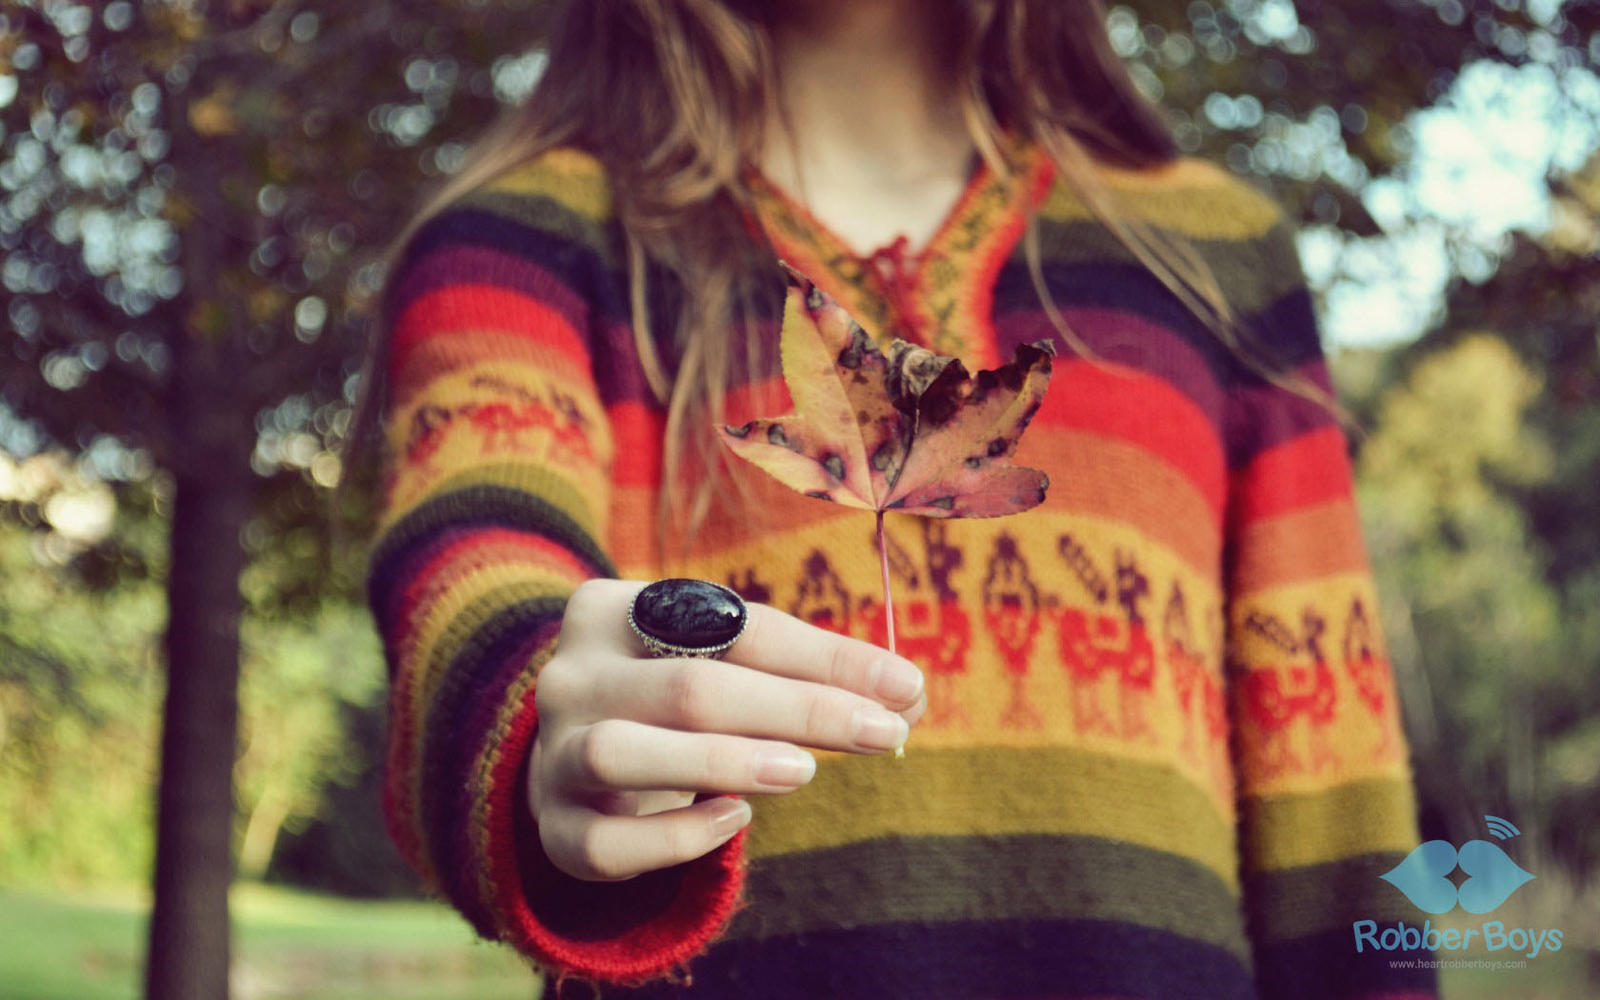 Girl-hand-ring-leaf-mood-hd-wallpaper by salsid on DeviantArt